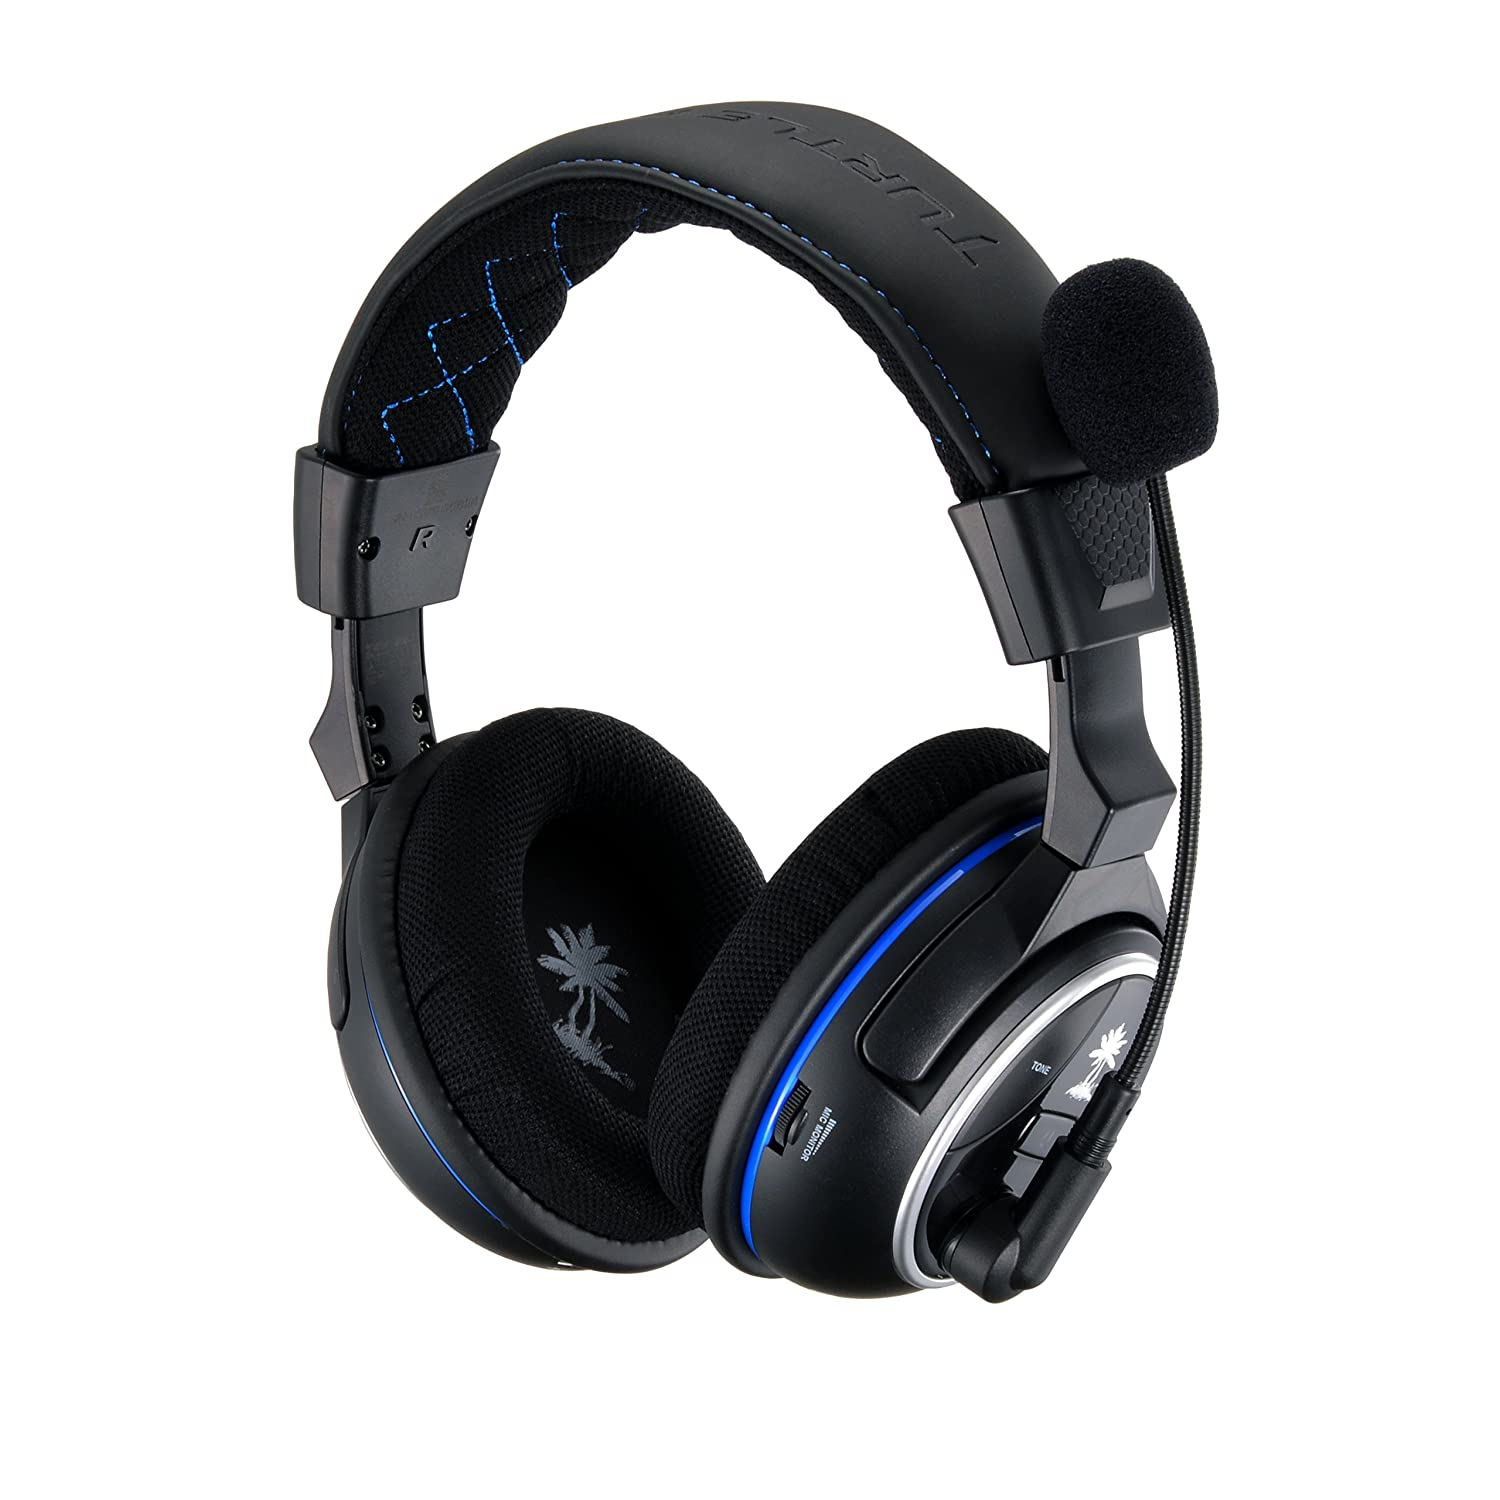 Turtle Beach Ear Force Px Premium Review